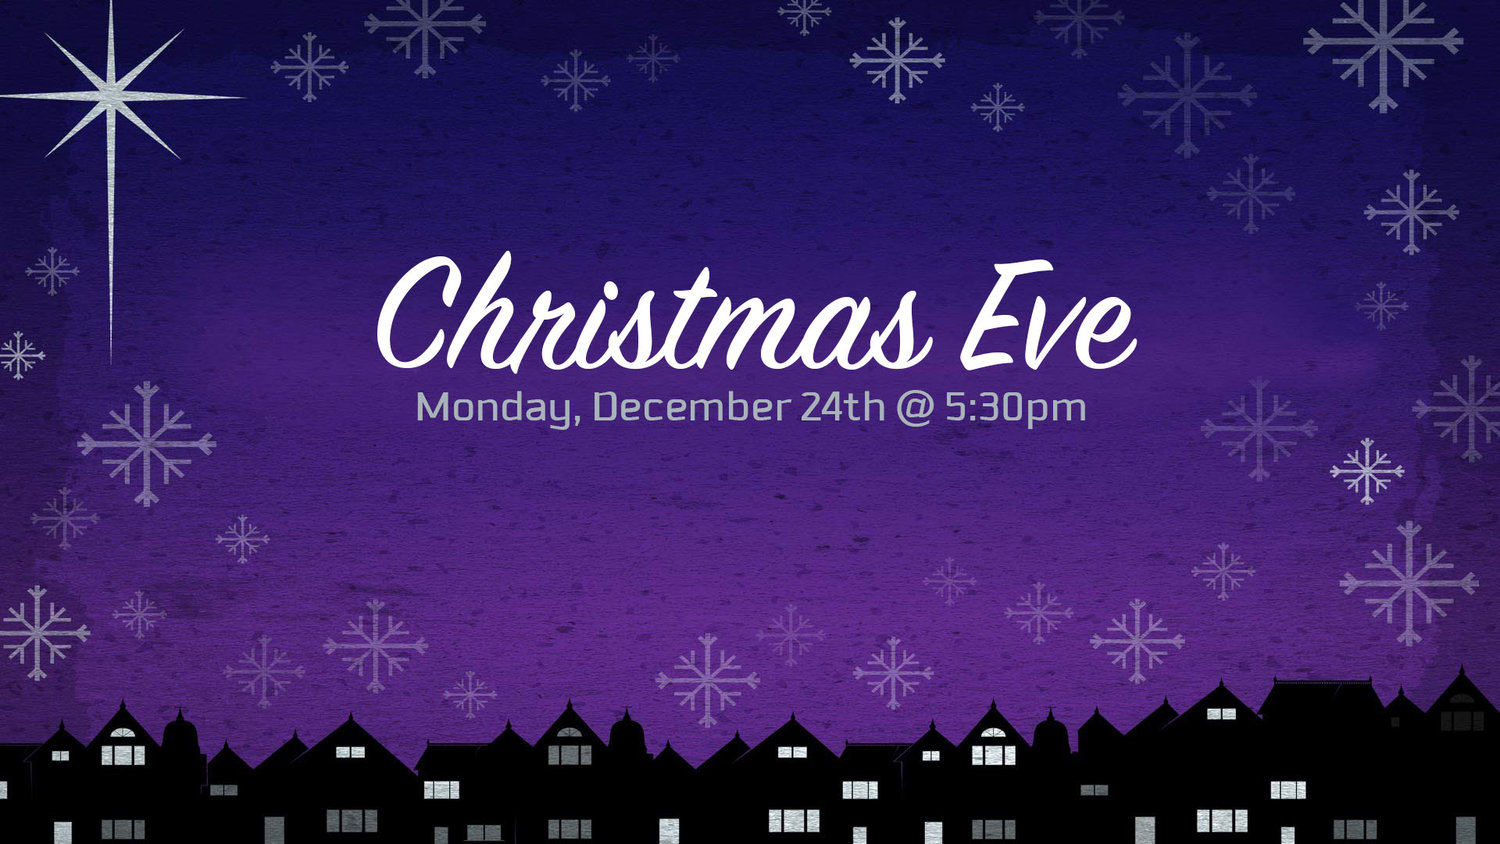 Christmas Eve Services Near Me.Christmas Eve Service North Chapel Bible Church Of